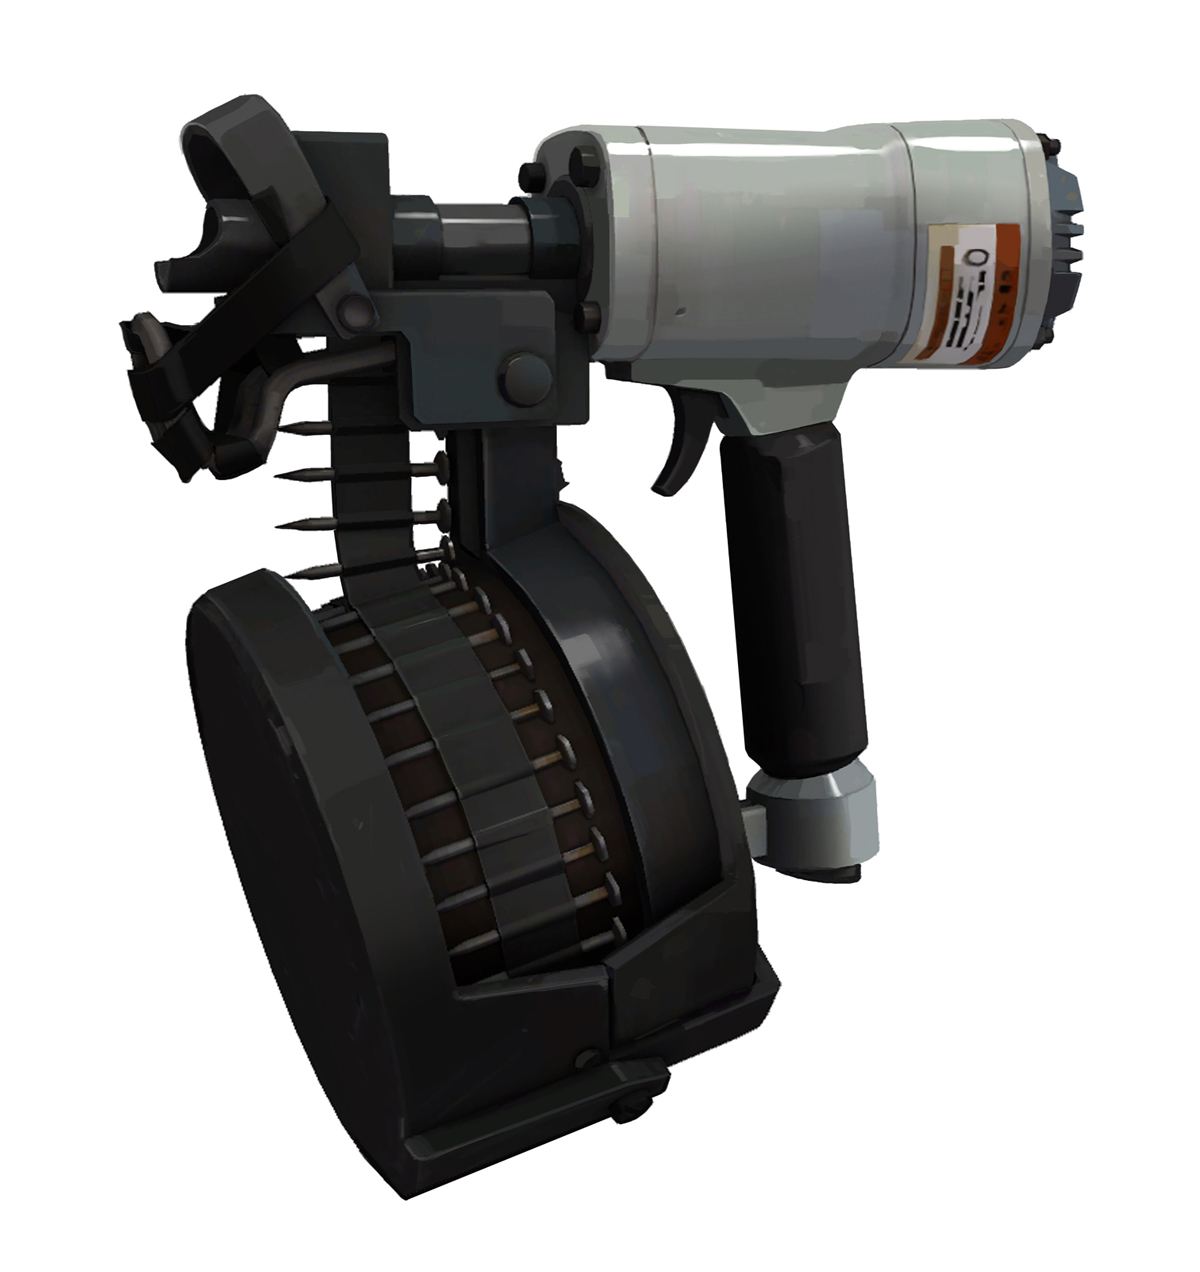 Dise os conceptuales official tf2 wiki official team fortress wiki - Pistolet a clou ...